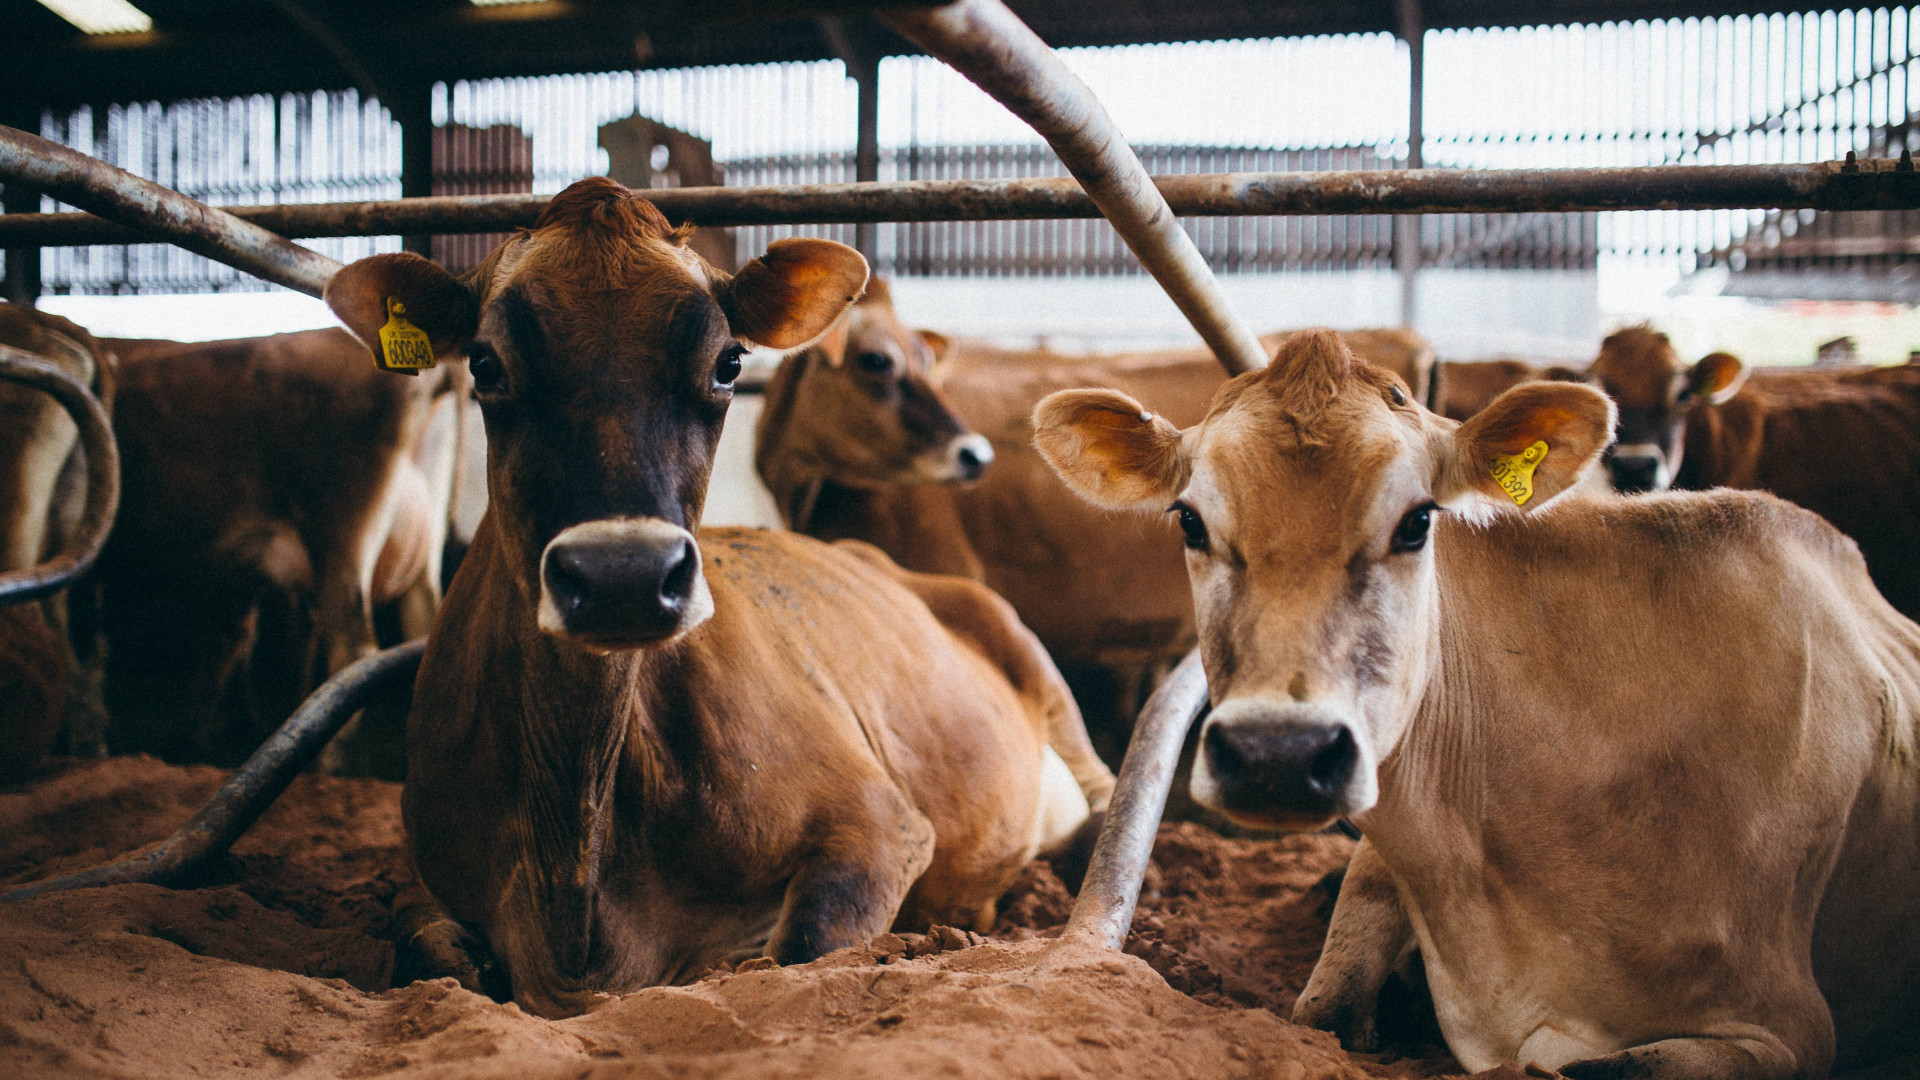 The Estate Dairy's Jersey cows